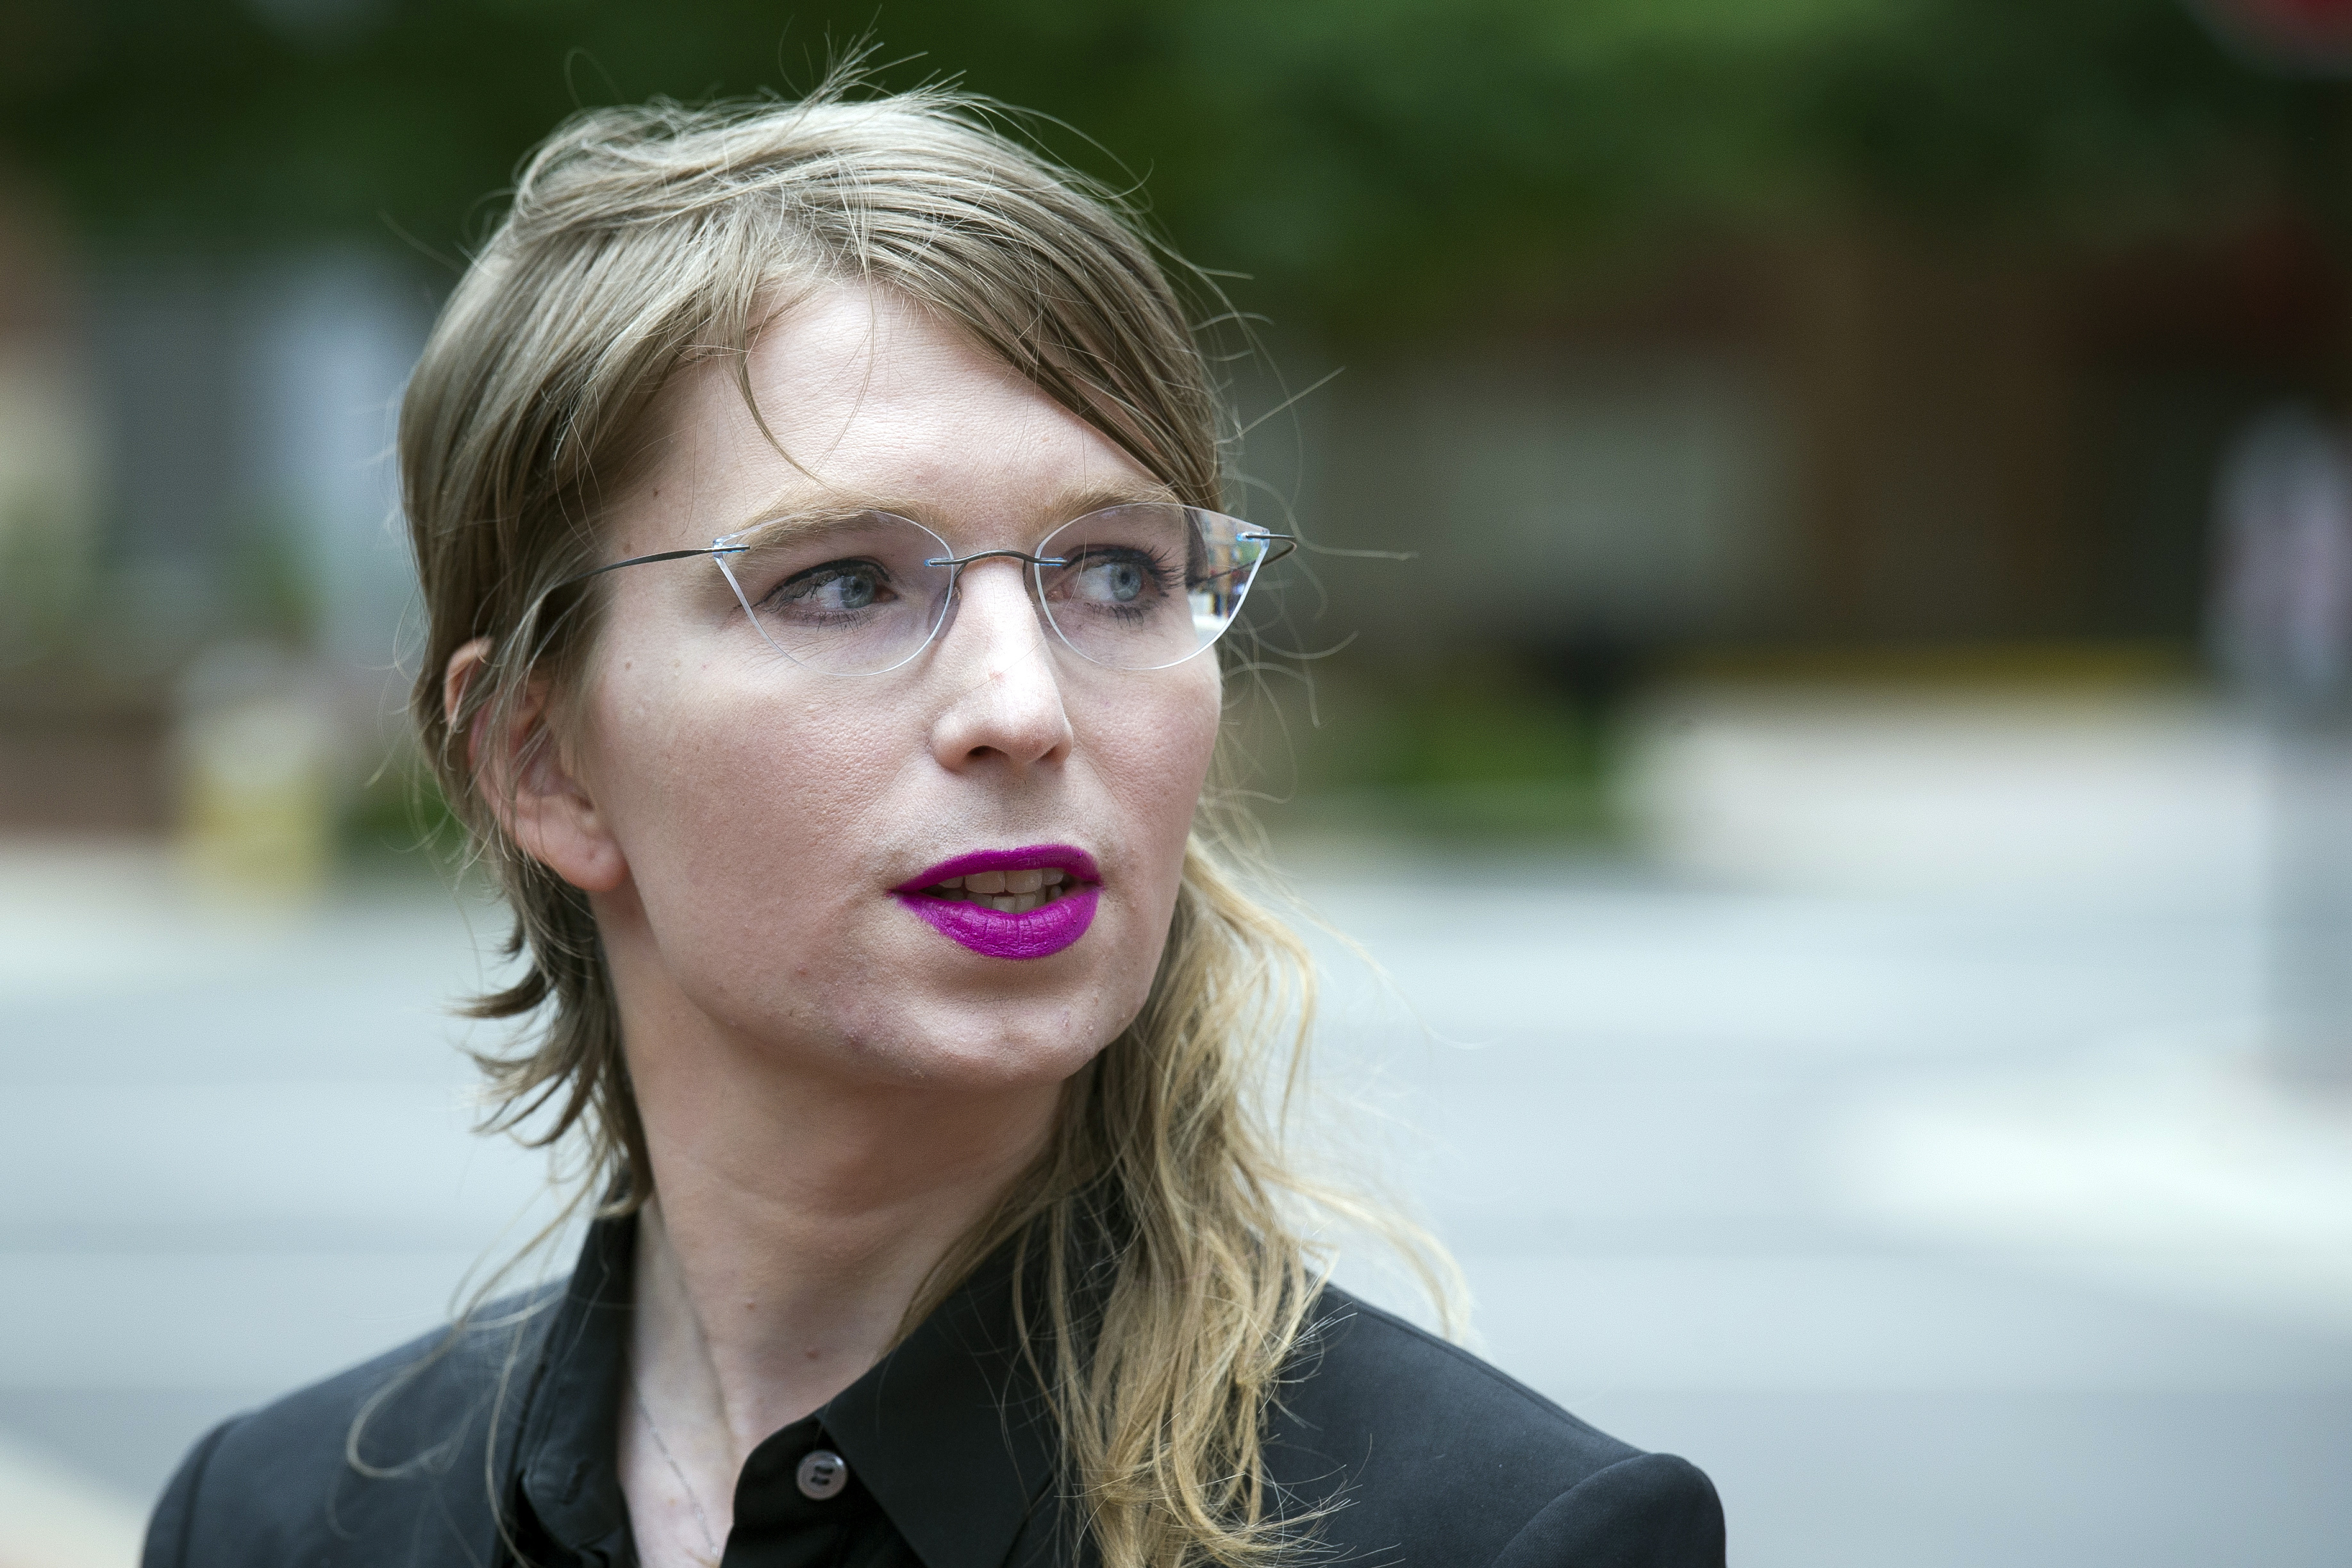 Chelsea Manning, jailed WikiLeaks source, seeks relief from contempt s